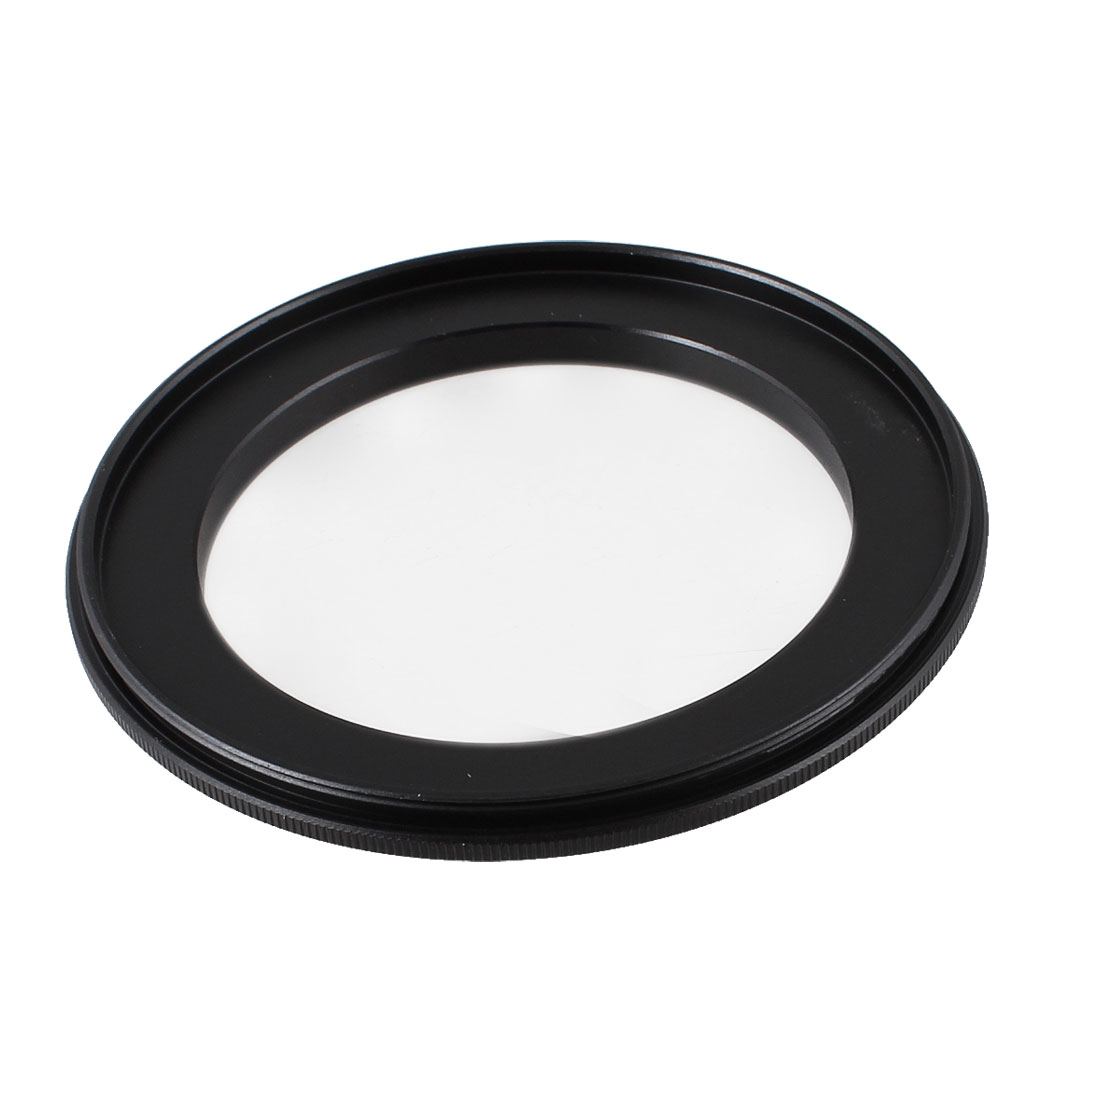 52mm-67mm 52mm to 67mm Male to Male Step up Ring Adapter Black for Camera